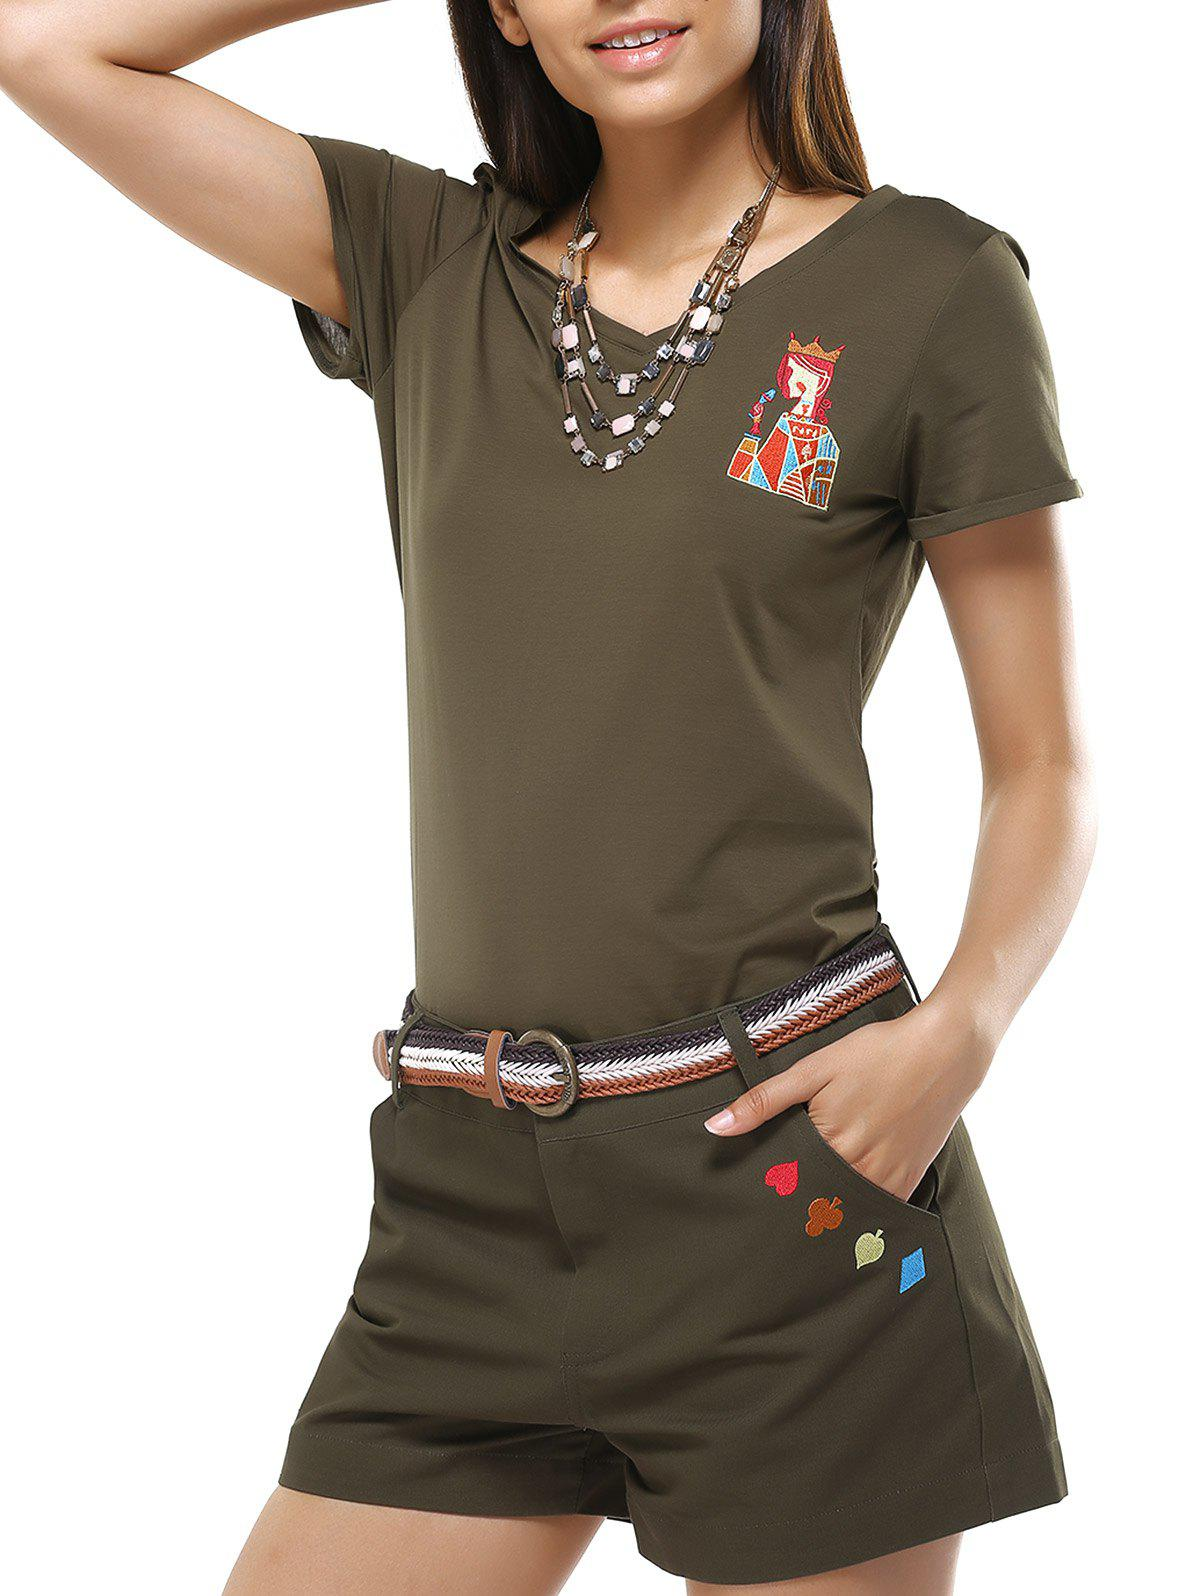 Chic Women's V-Neck Girl Pattern T-Shirt and Shorts Twinset - ARMY GREEN L